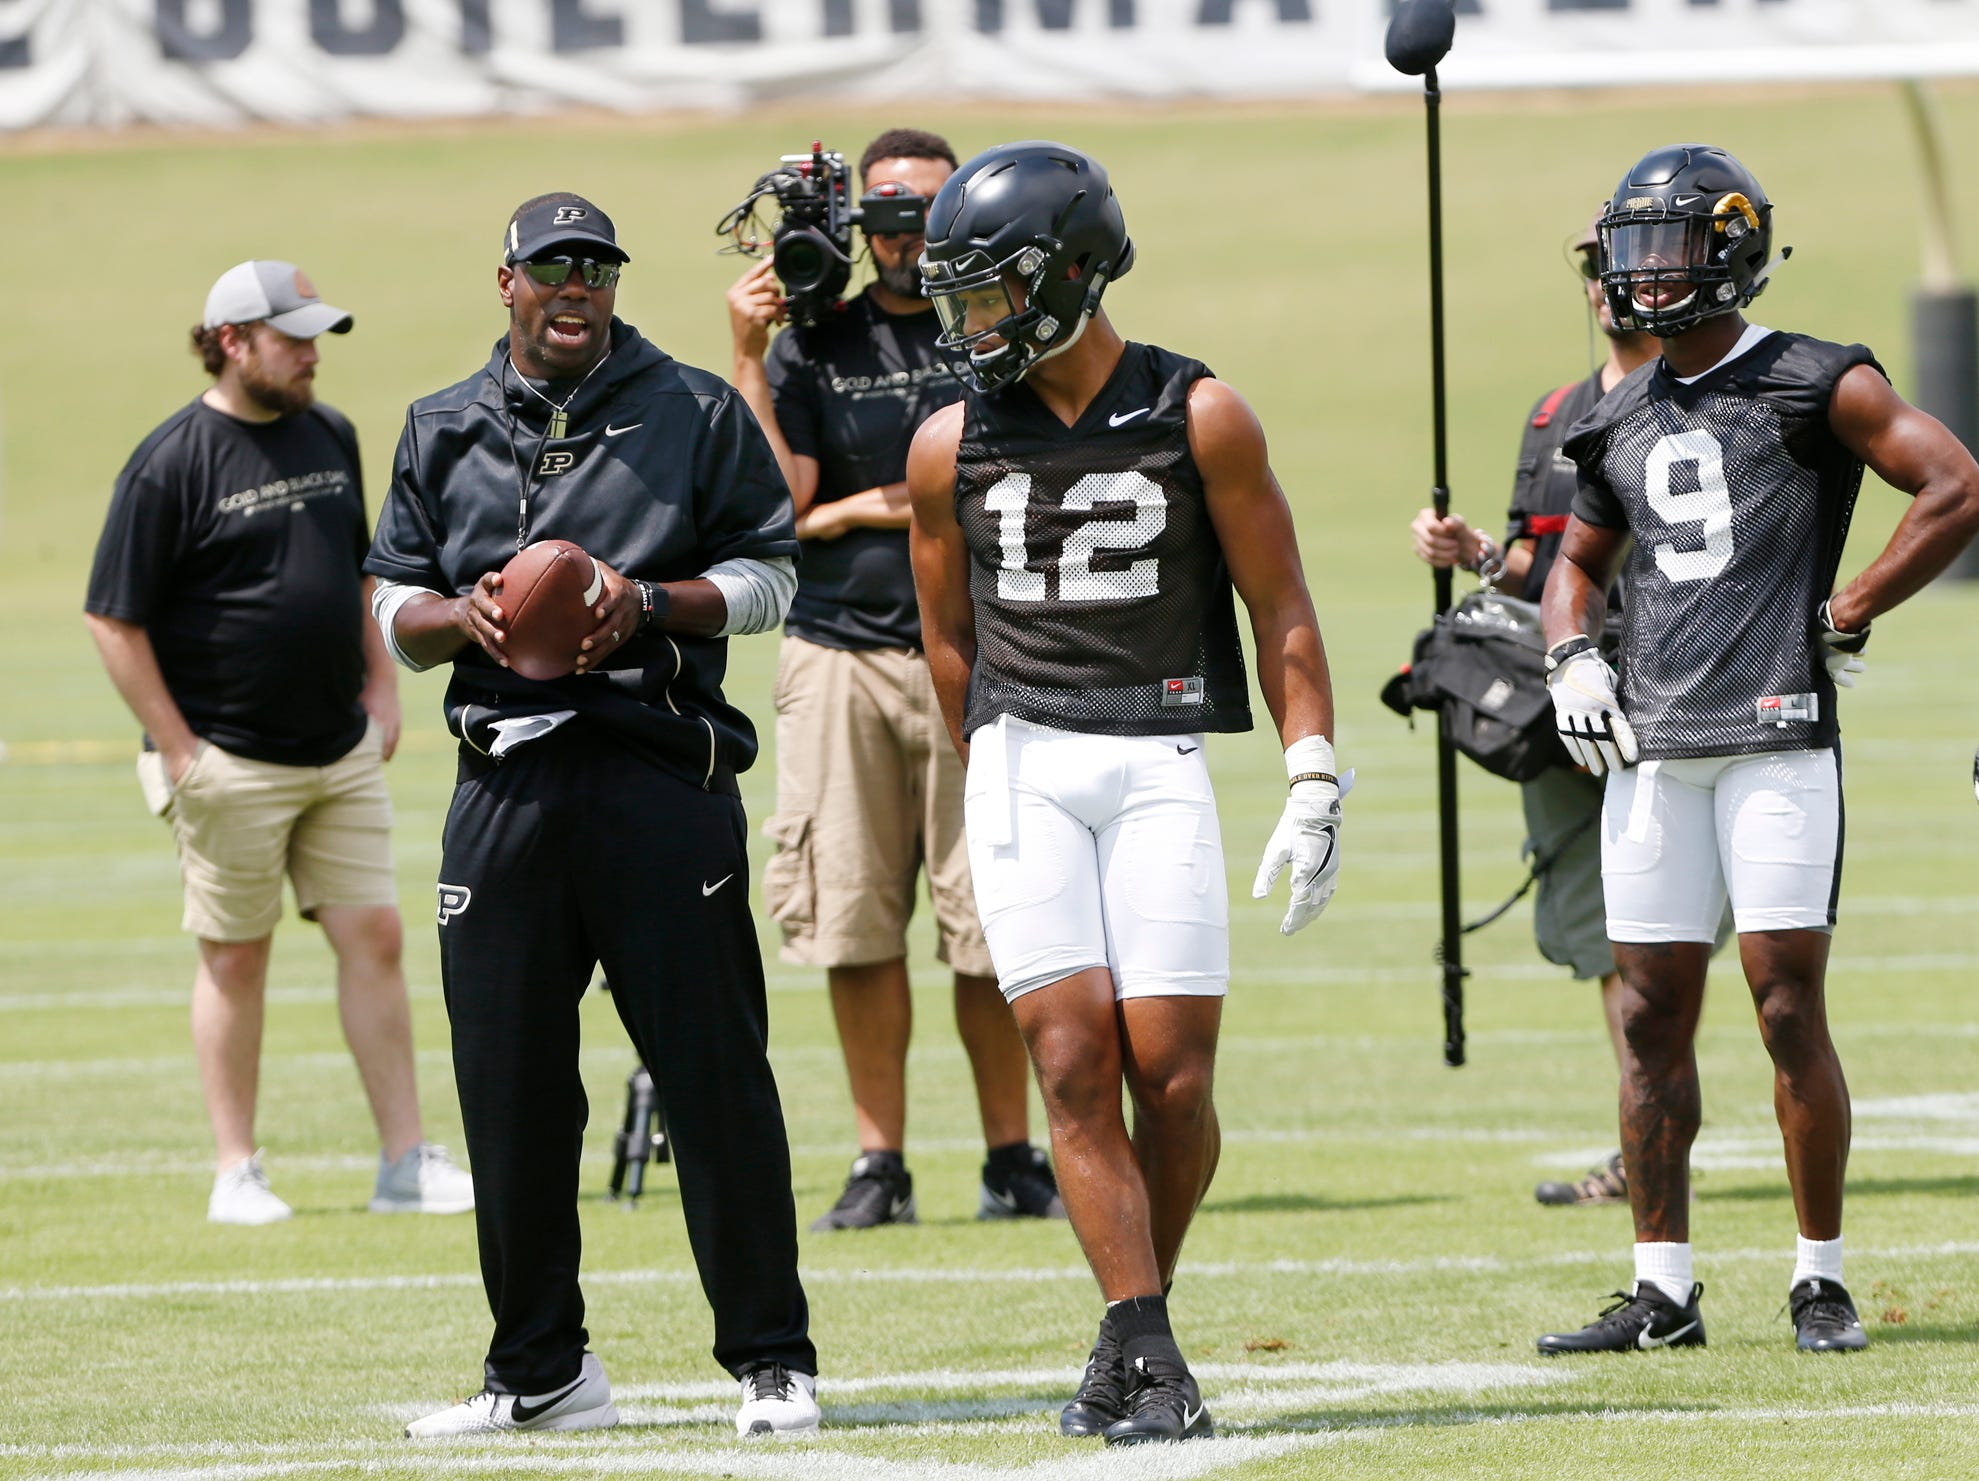 Wide receivers coach and co-offensive coordinator Jamarcus Shephard tells wide receiver Jared Sparks which pass route to run during football practice Wednesday, August 1, 2018, at Purdue.